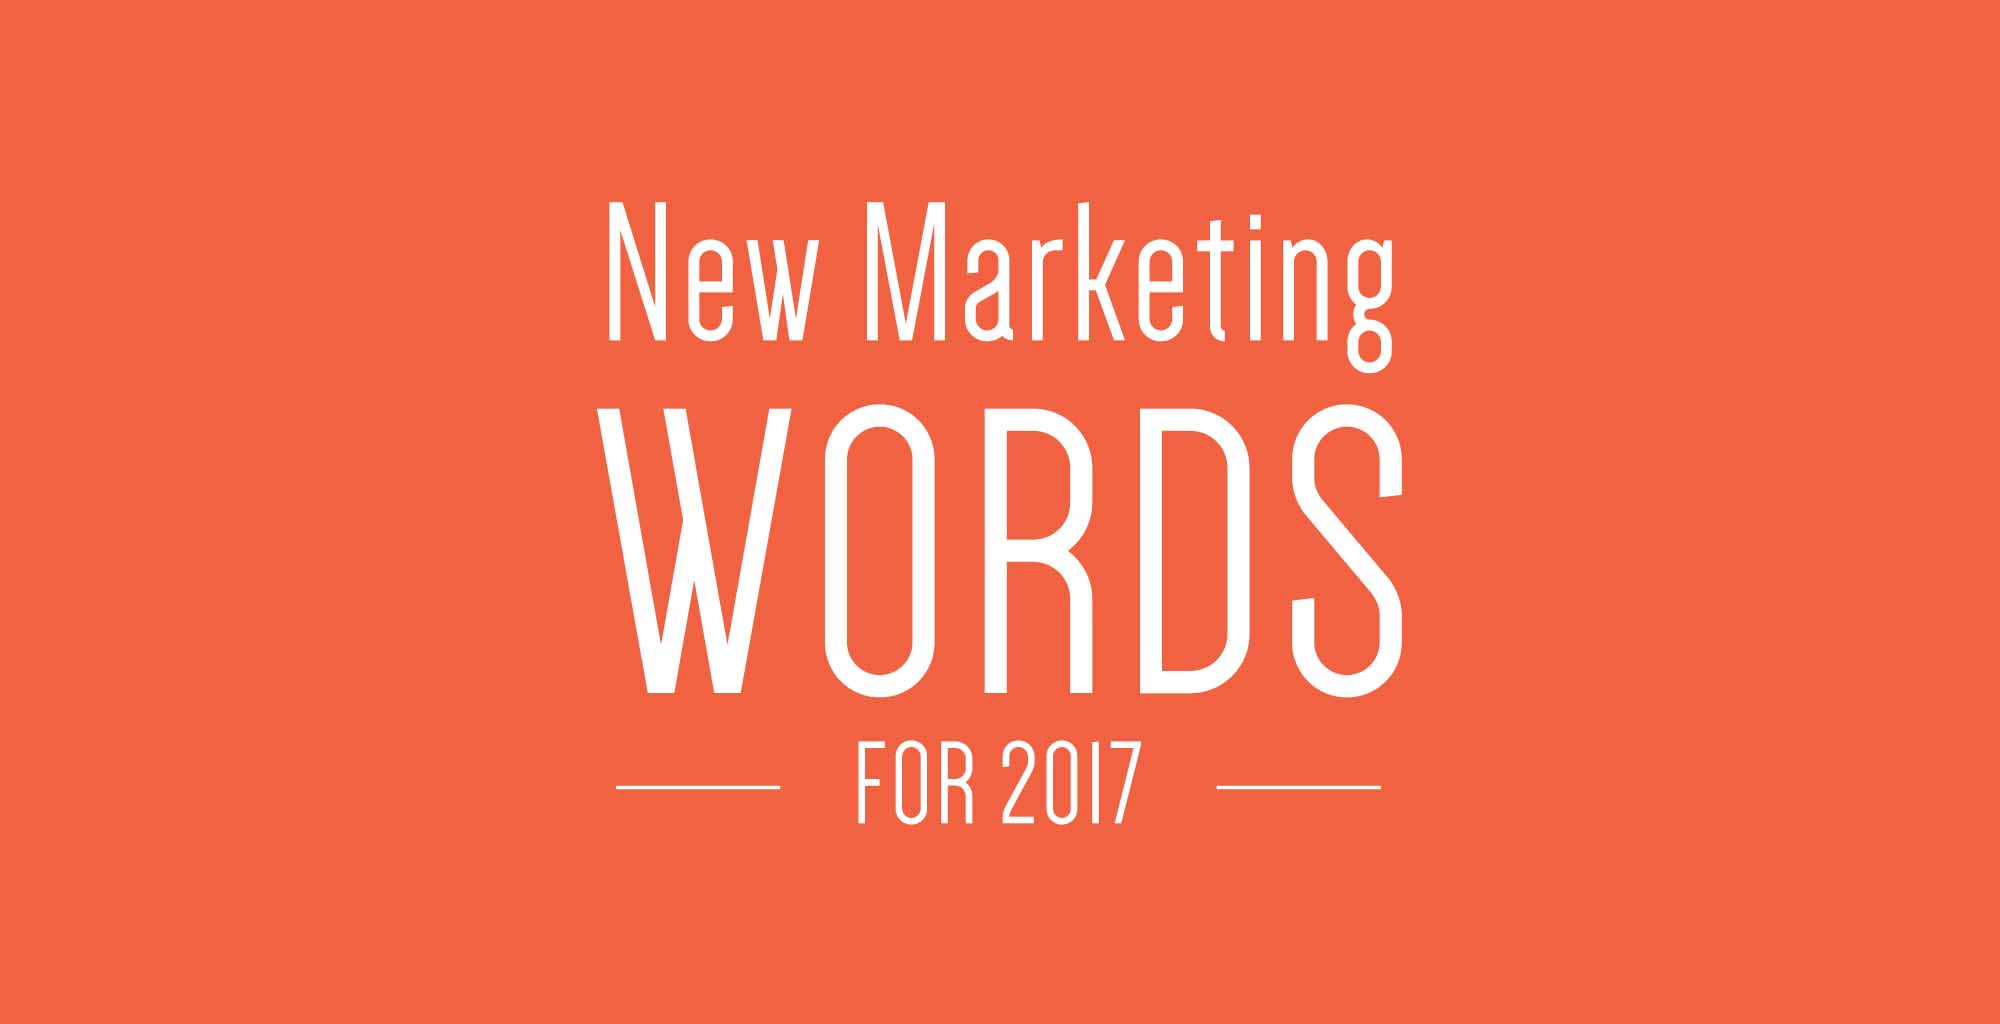 New Marketing Words